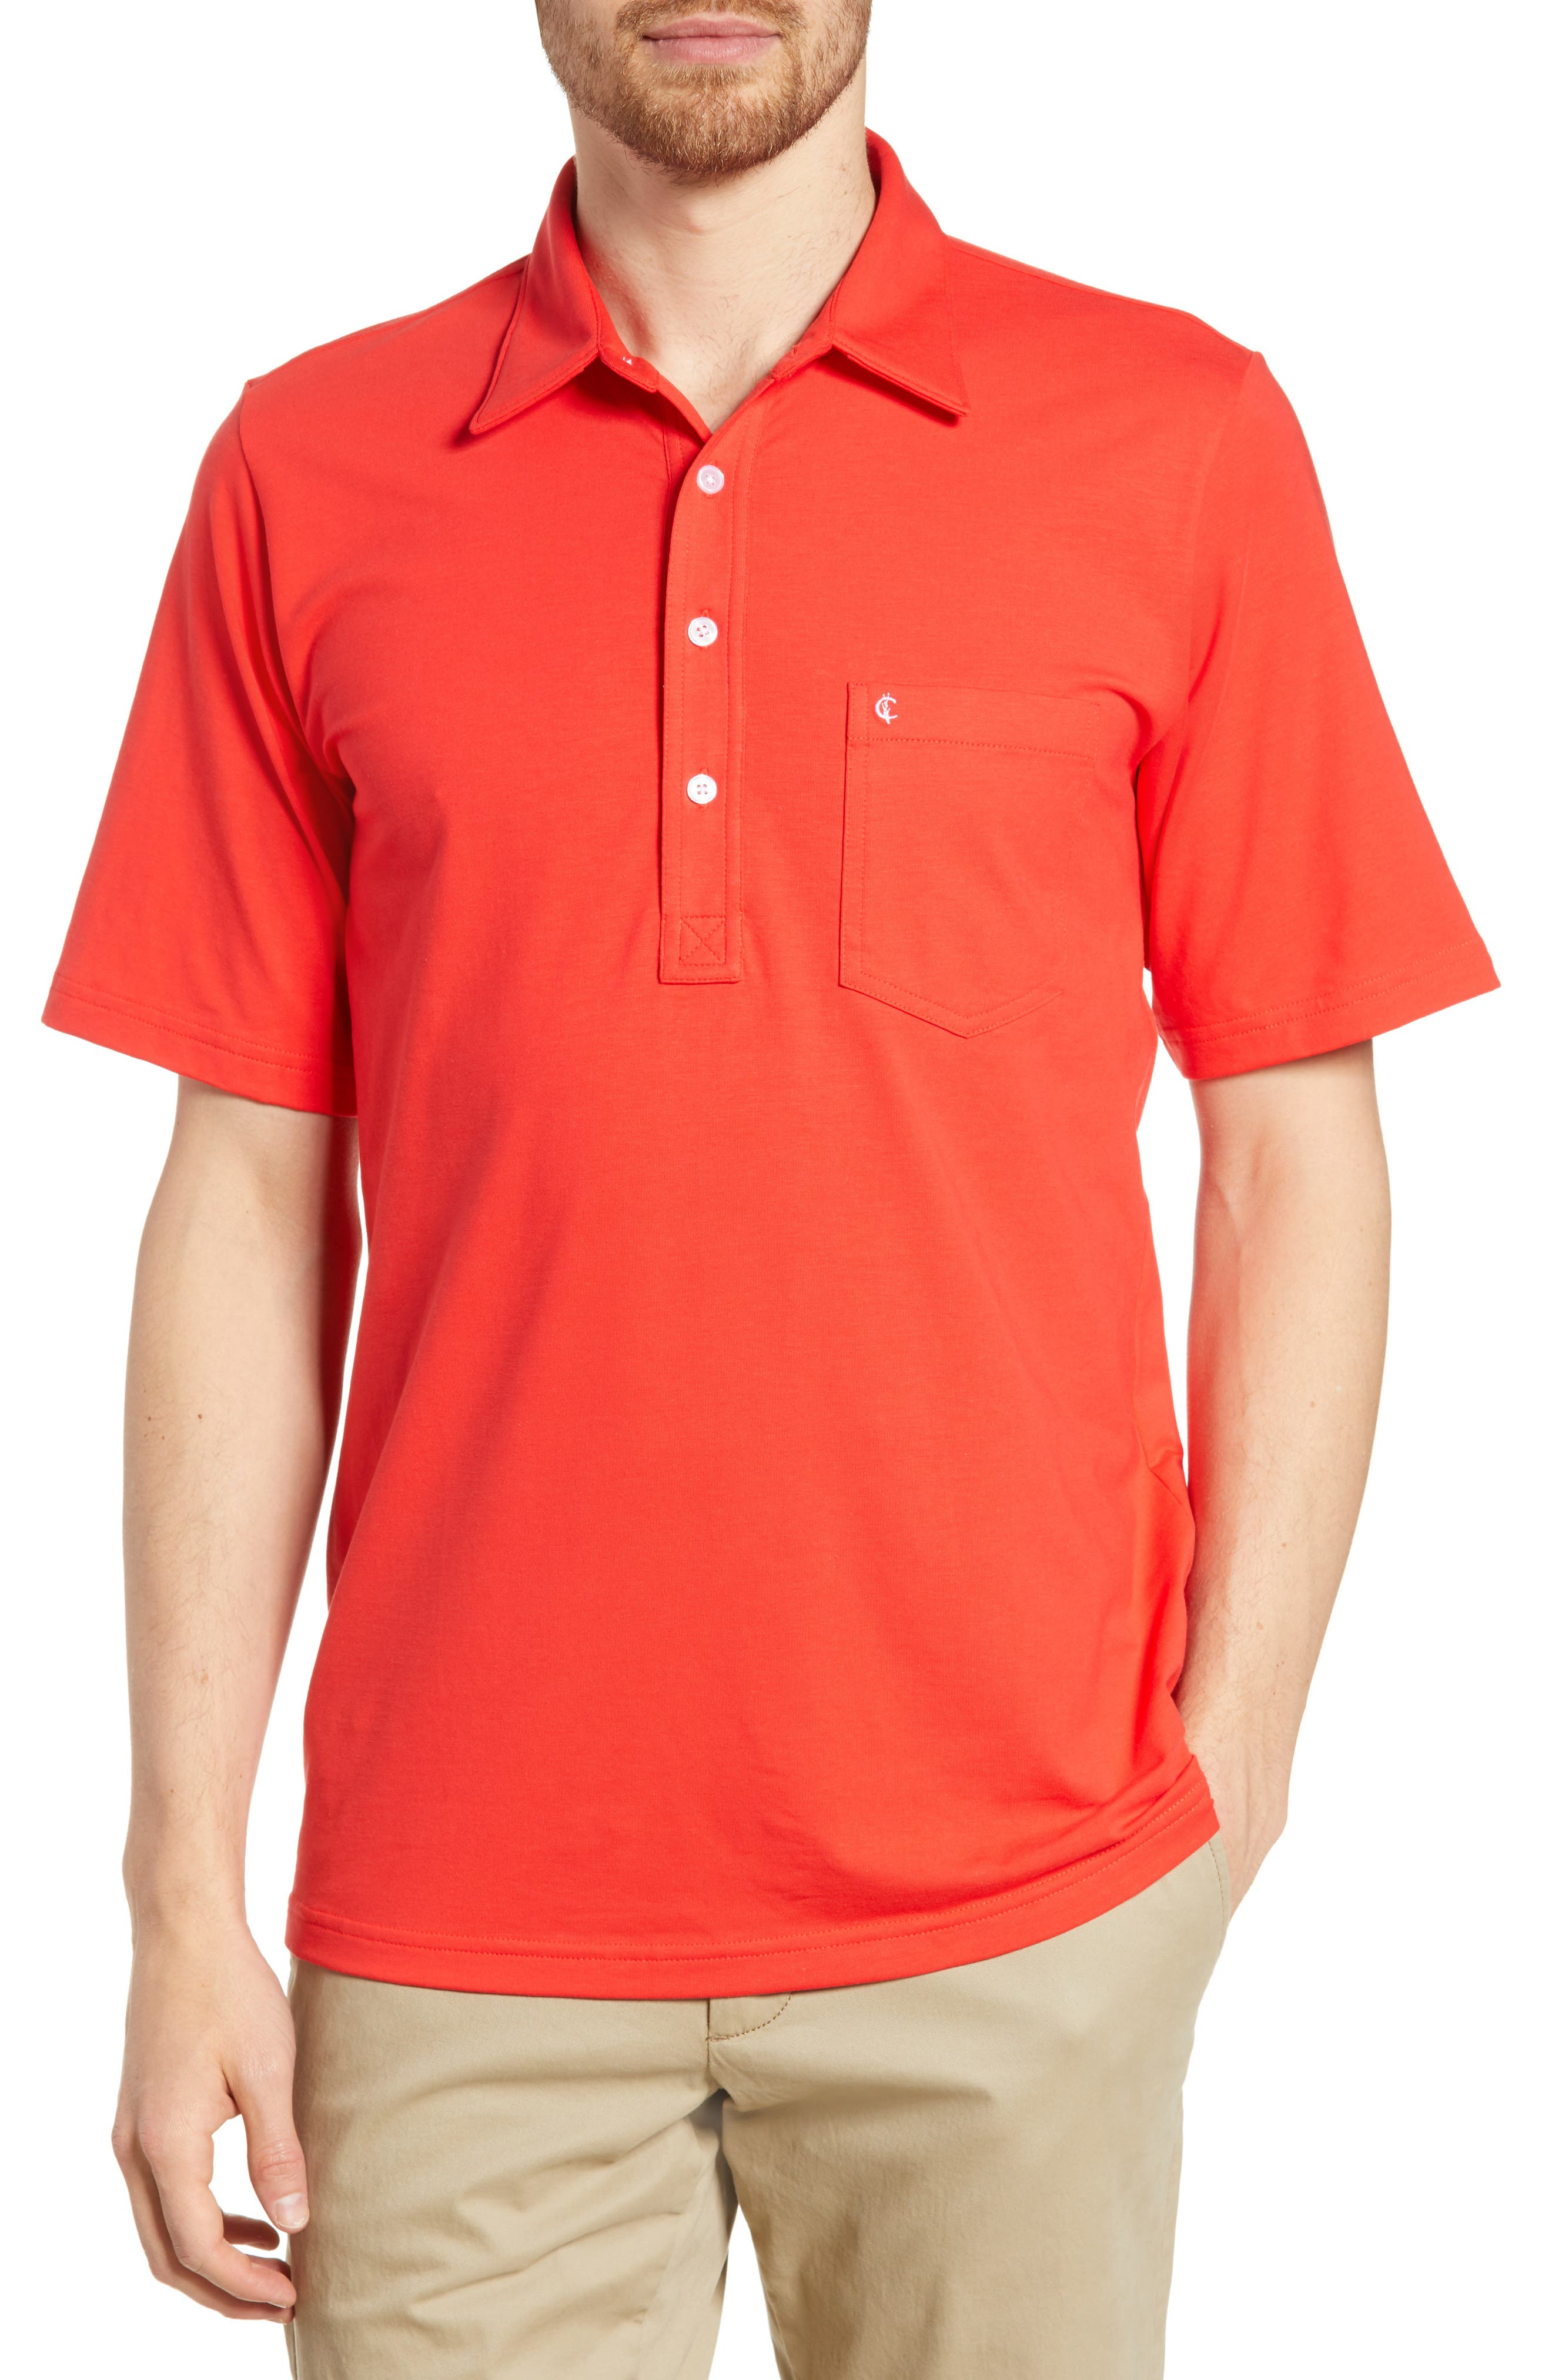 Criquet Players Stretch Jersey Polo, Red